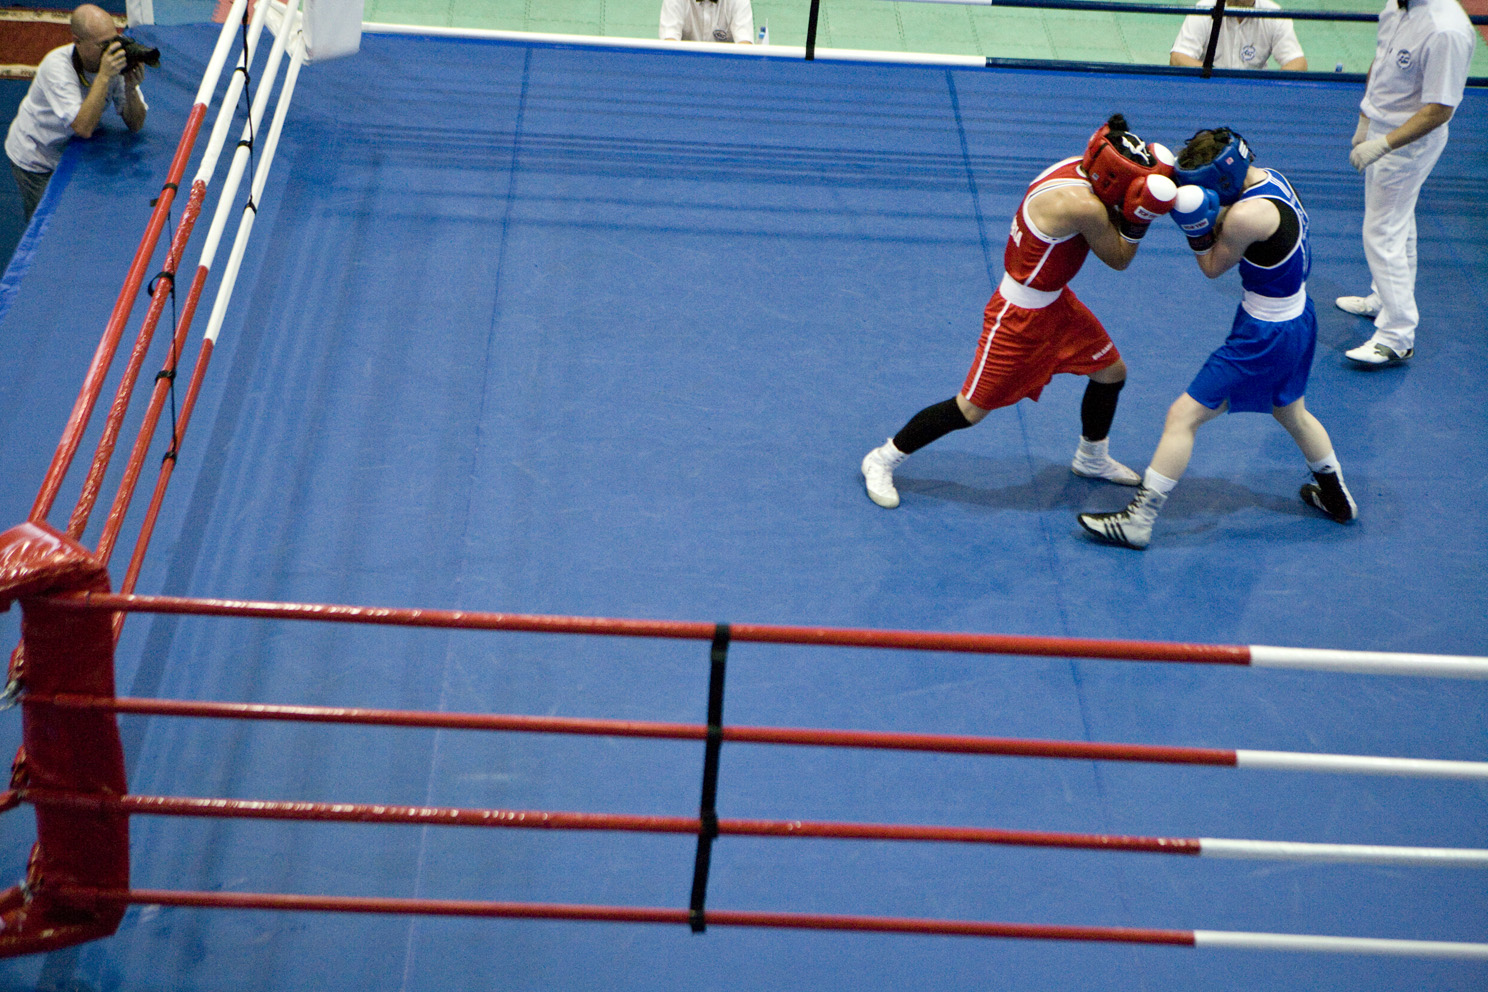 Womens European boxing championships in Nikolaev Ukraine shot for the Red Bulletin